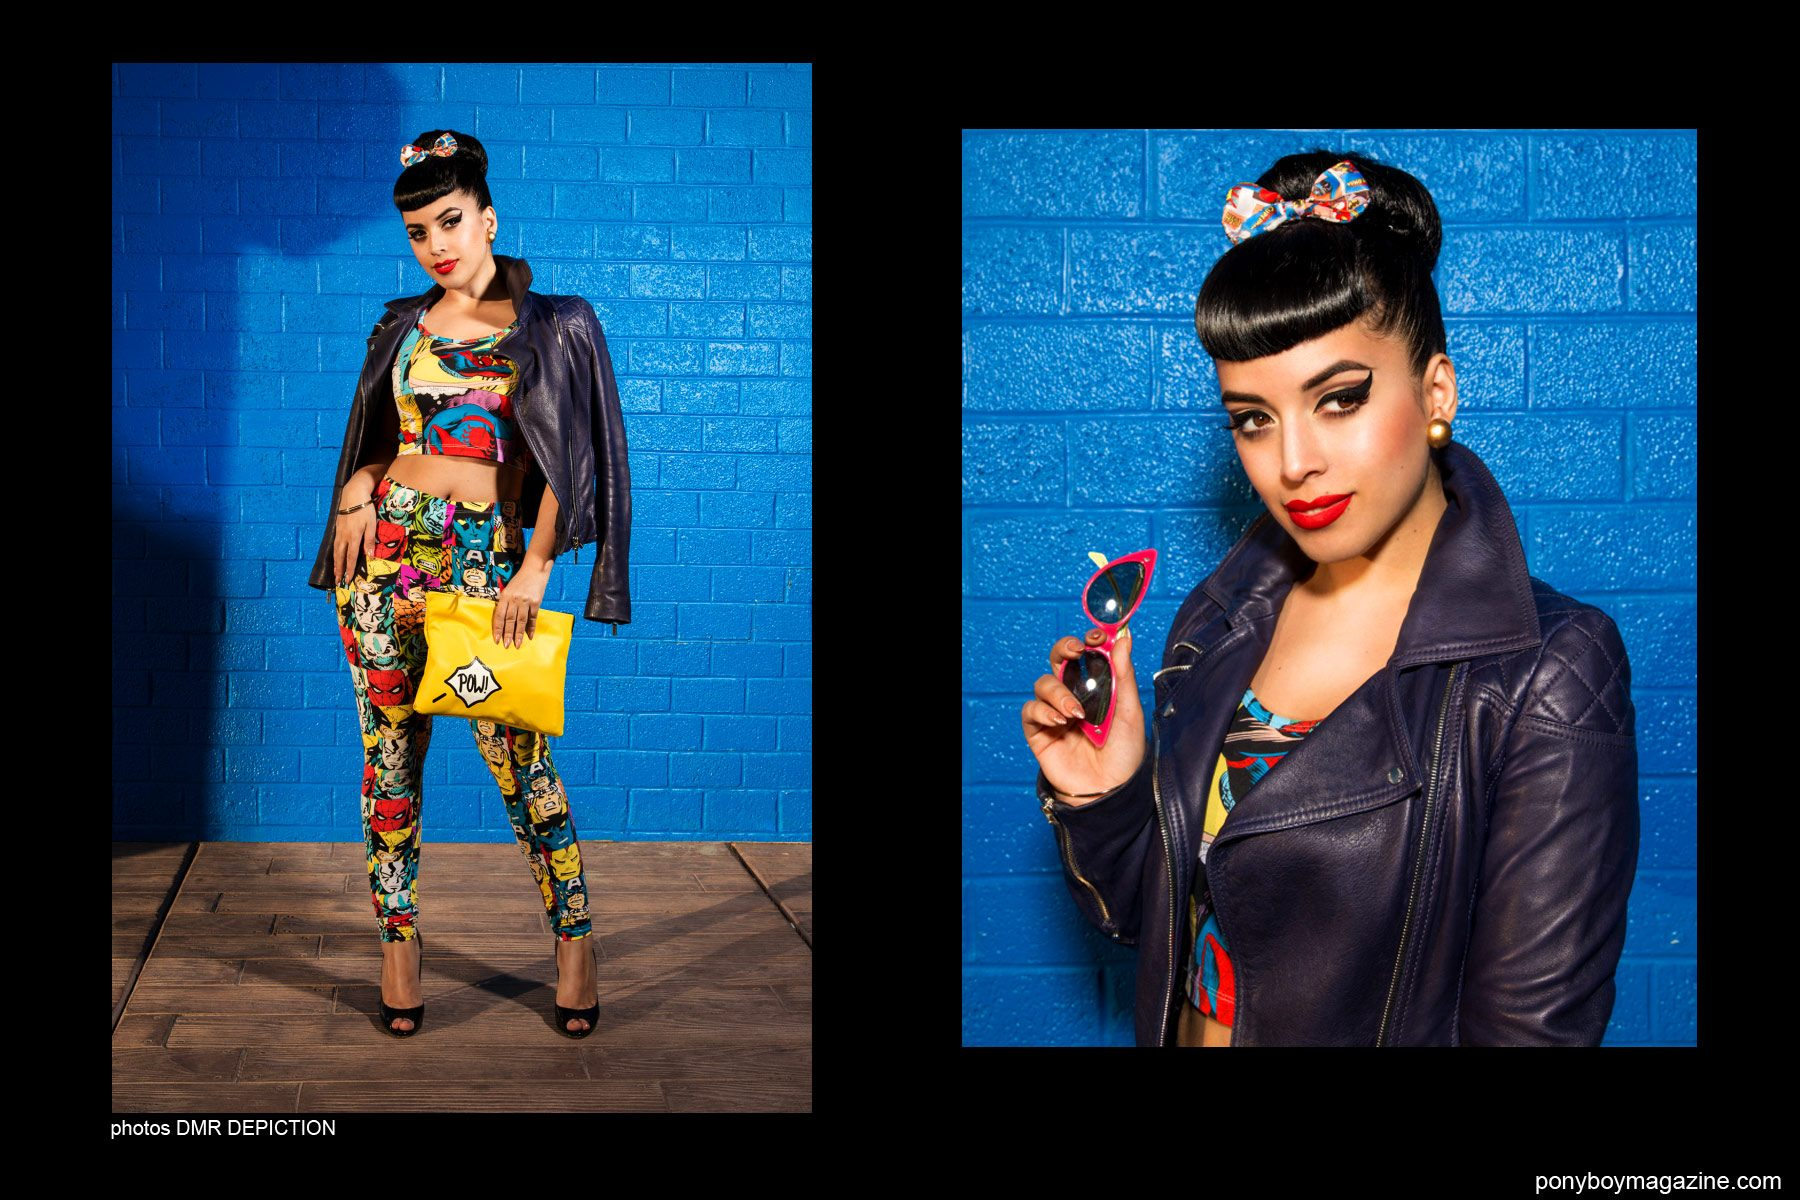 Photos of Jasmine Rodriguez, also known as Vintage Vandal, by DMR Depiction. Ponyboy Magazine NY.